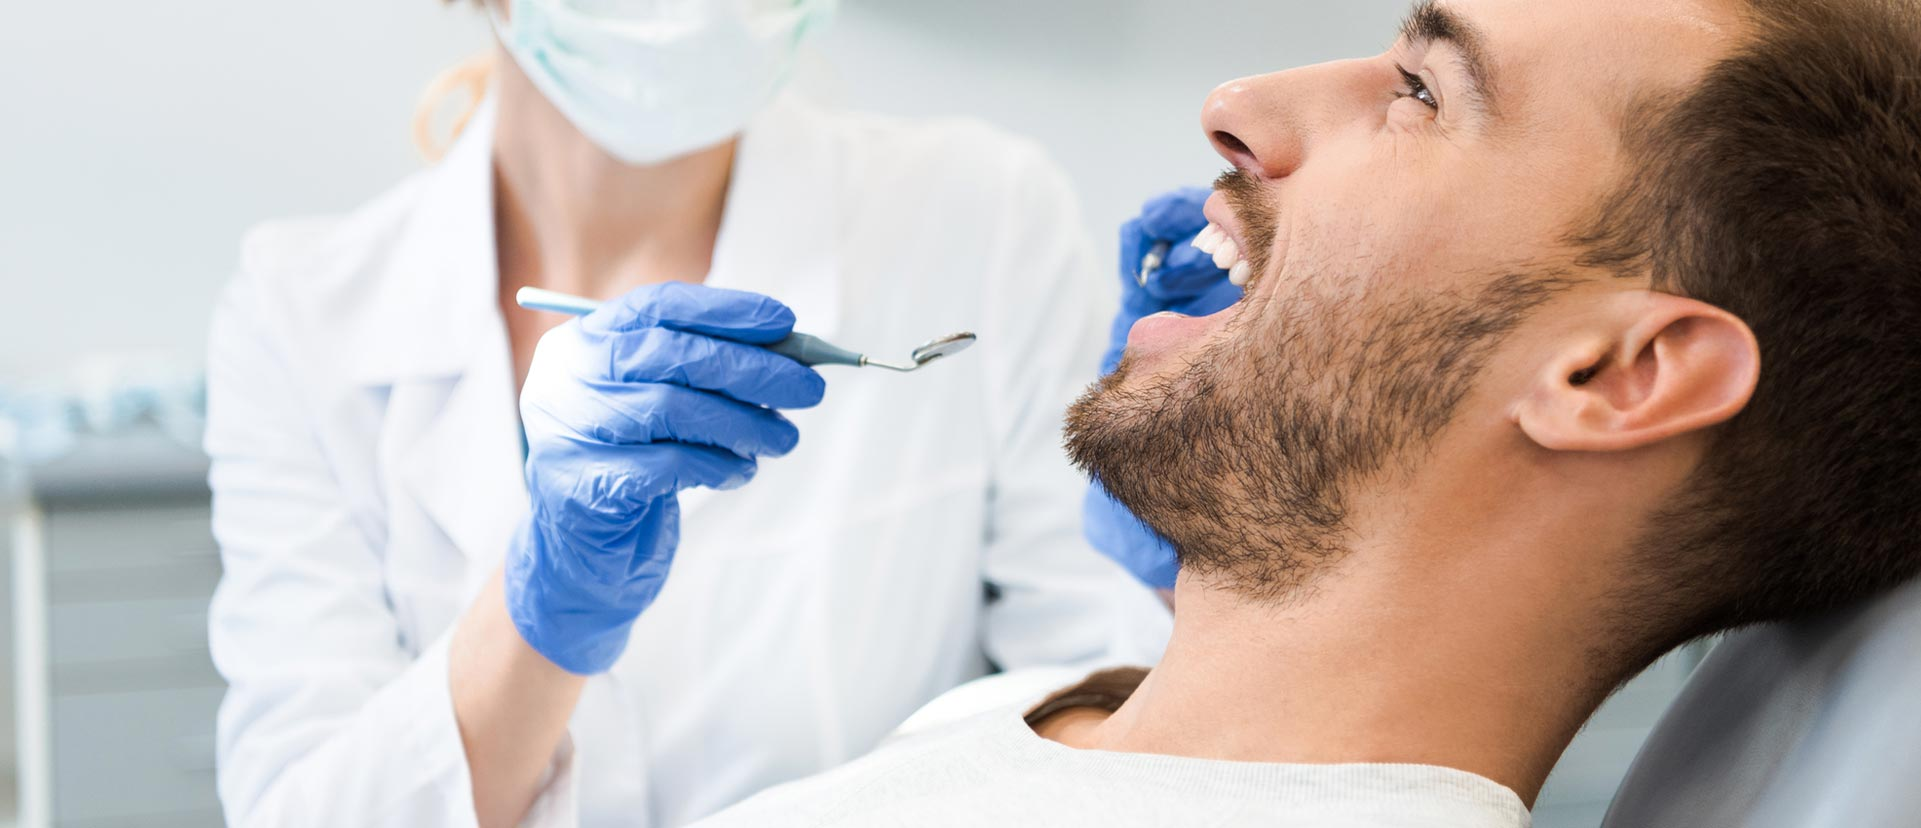 A man is smiling at the dental clinic